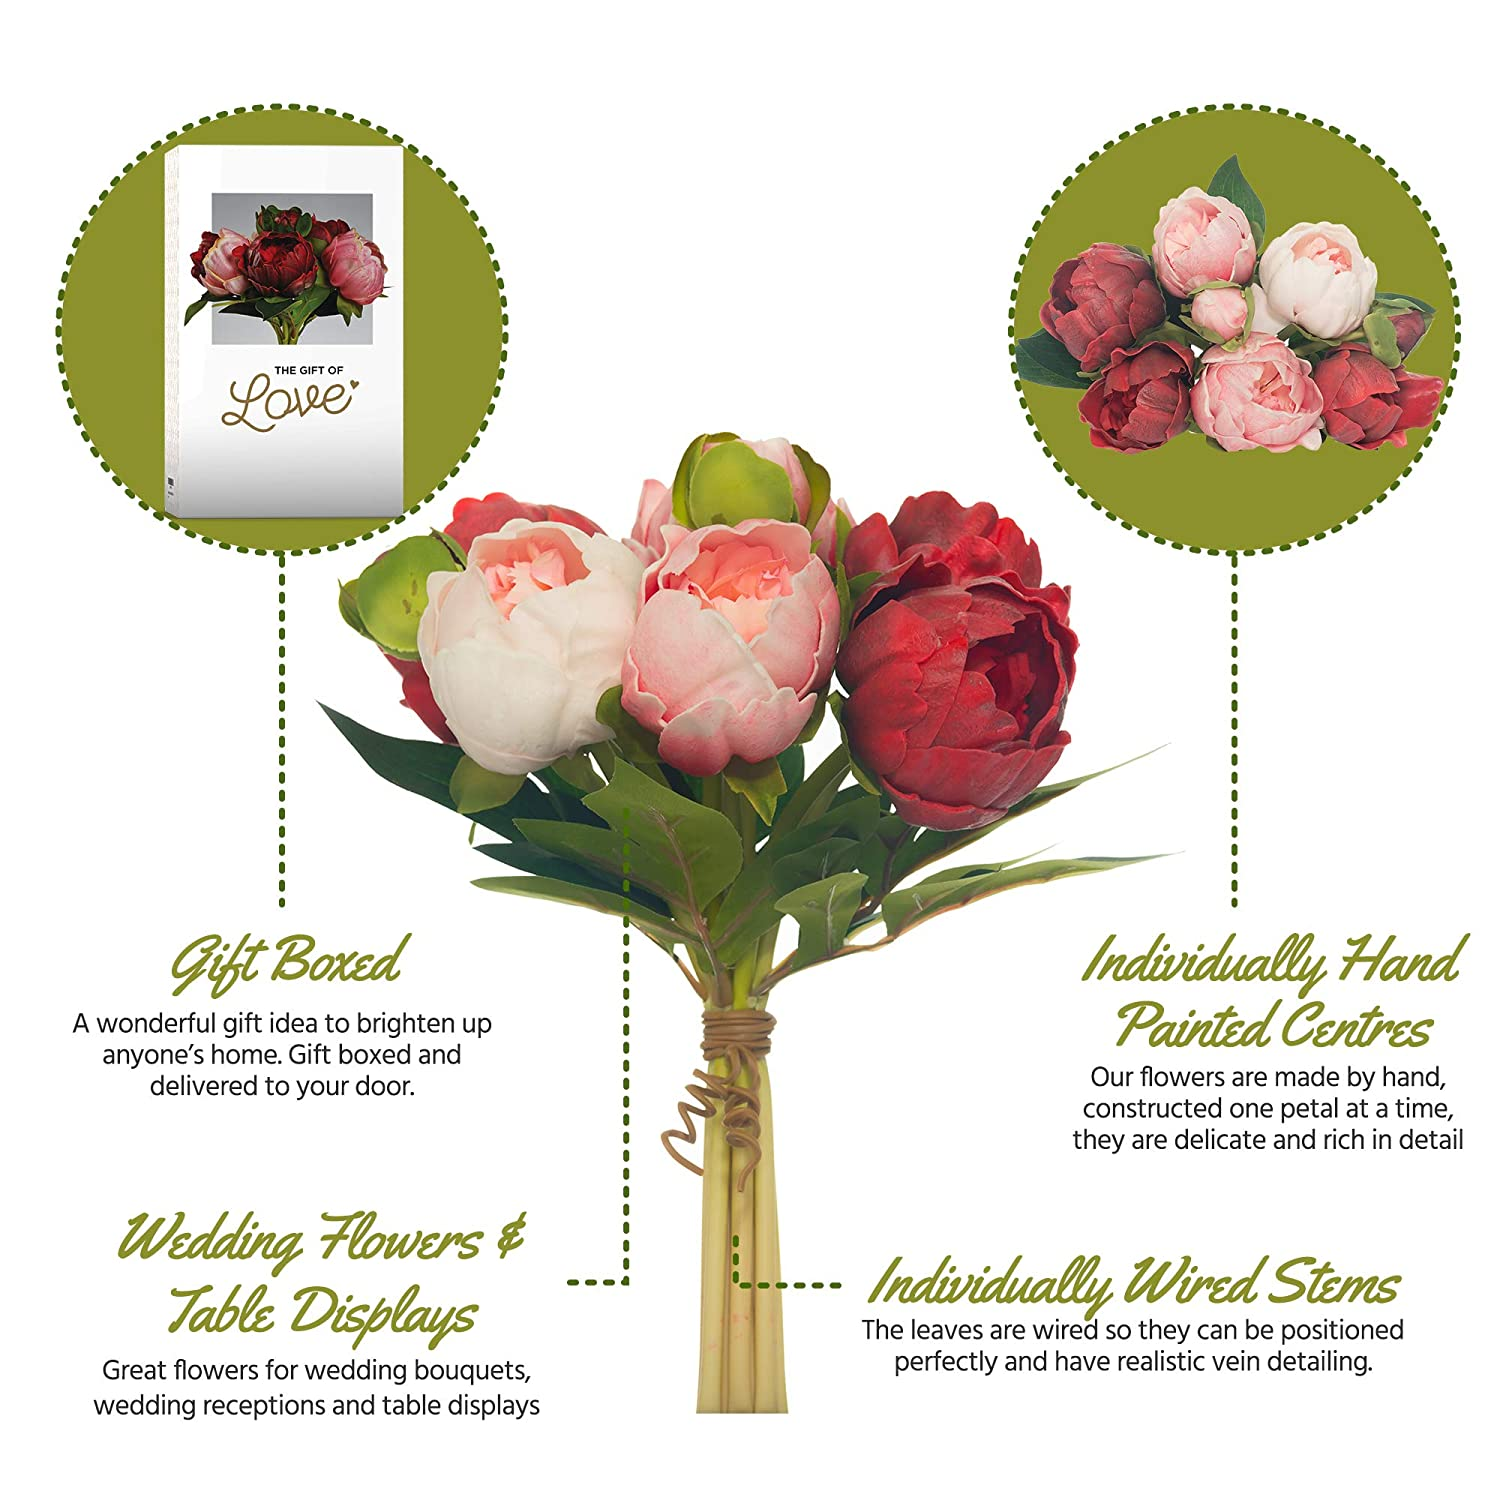 Peonies Real Touch Latex Peonies Hand Made-Petals Rich in Detail Pink/Soft Pink Comes Boxed- Peony Bouquet 6 Flowers 2 Buds-Perfect Flower Gift- Pink Latex Flowers